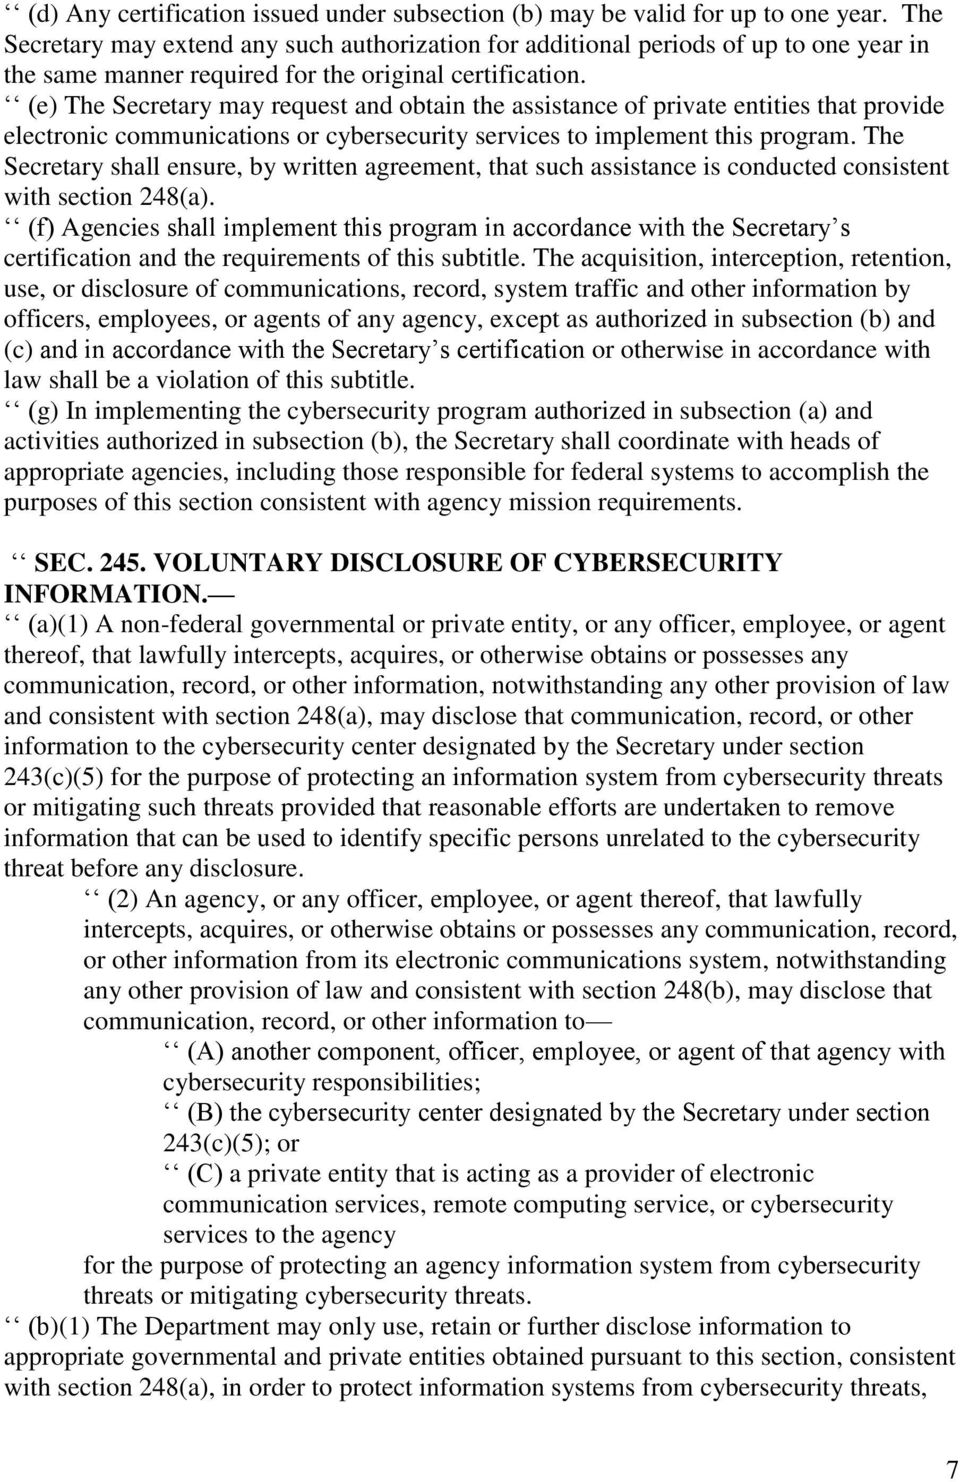 (e) The Secretary may request and obtain the assistance of private entities that provide electronic communications or cybersecurity services to implement this program.